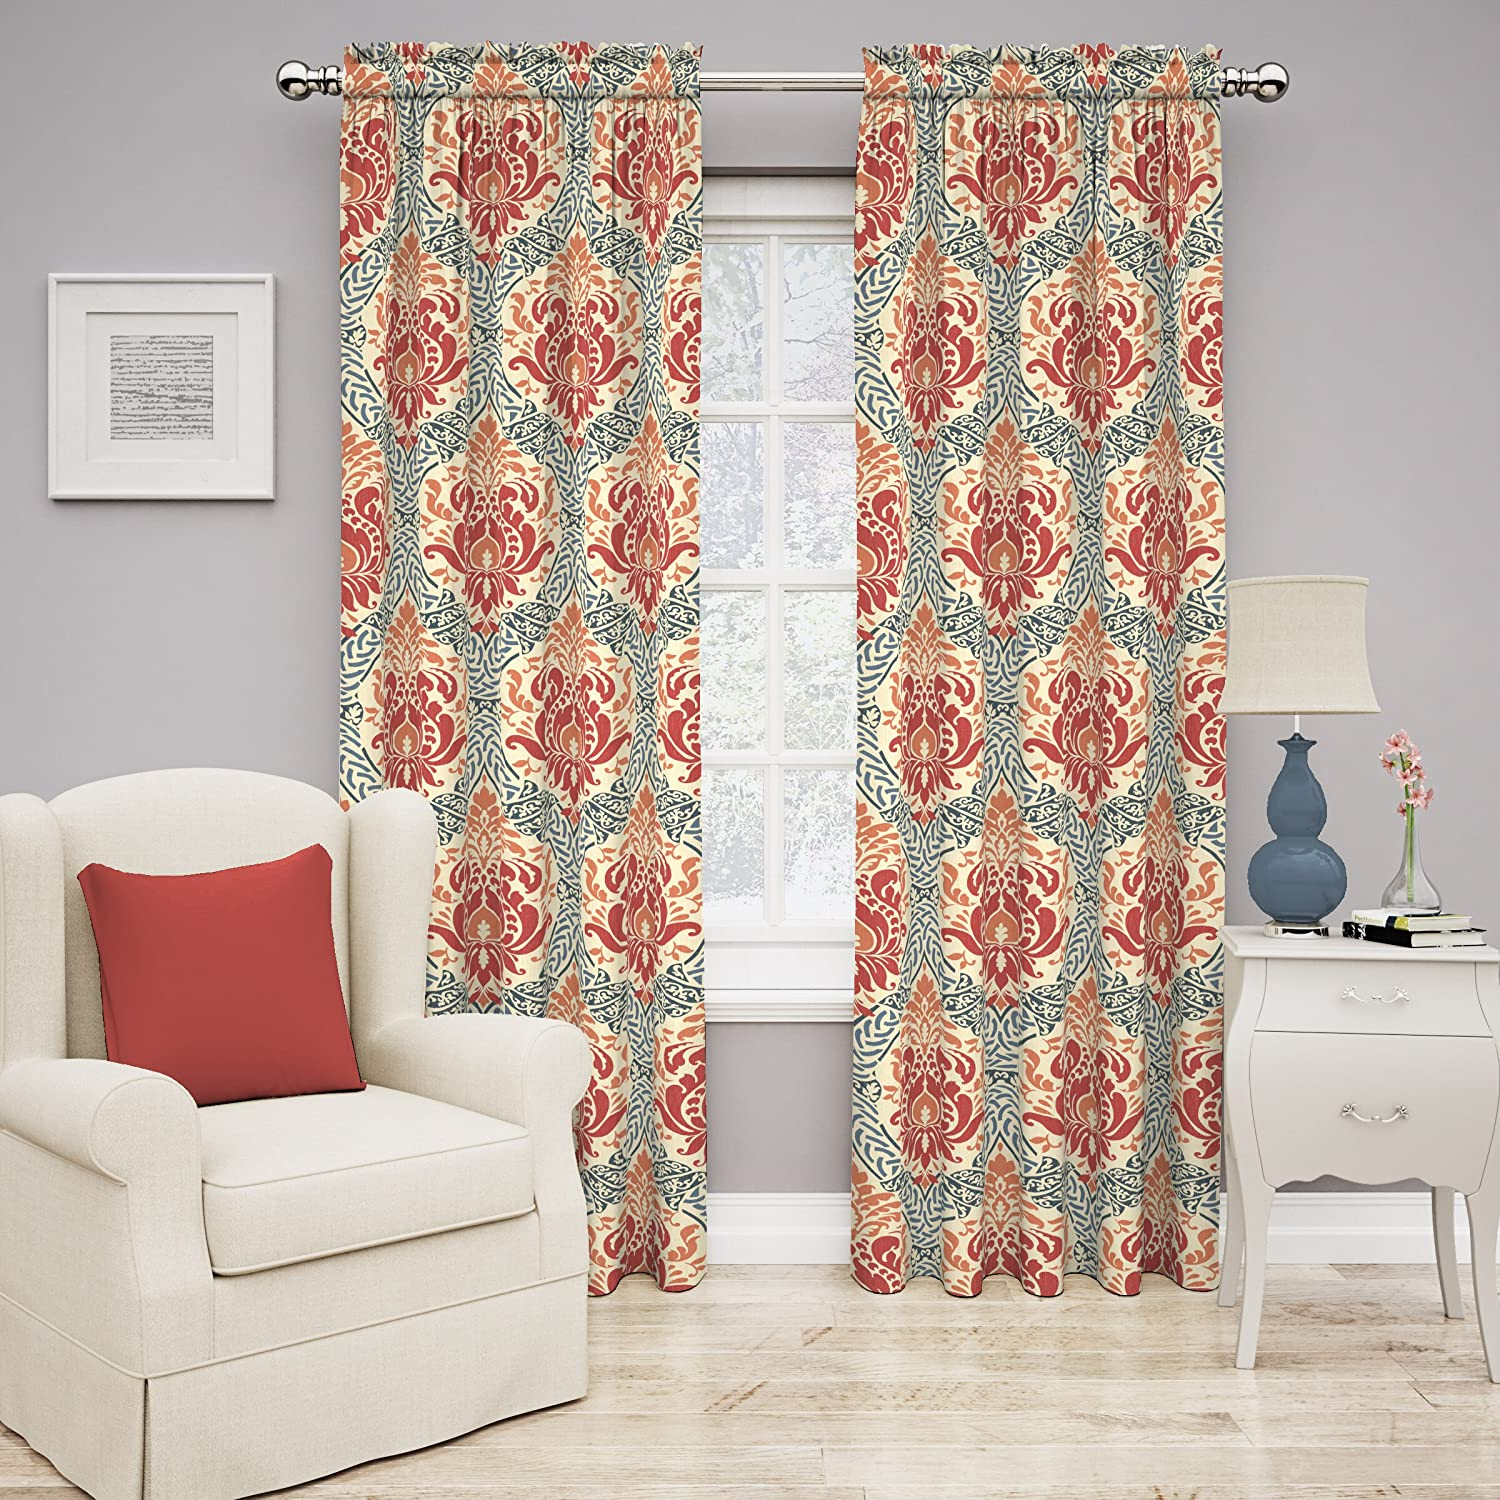 Damask curtains living room - Amazon Com Traditions By Waverly 14975052084pop Dressed Up Damask 52 Inch By 84 Inch Single Window Curtain Panel Poppy Home Kitchen